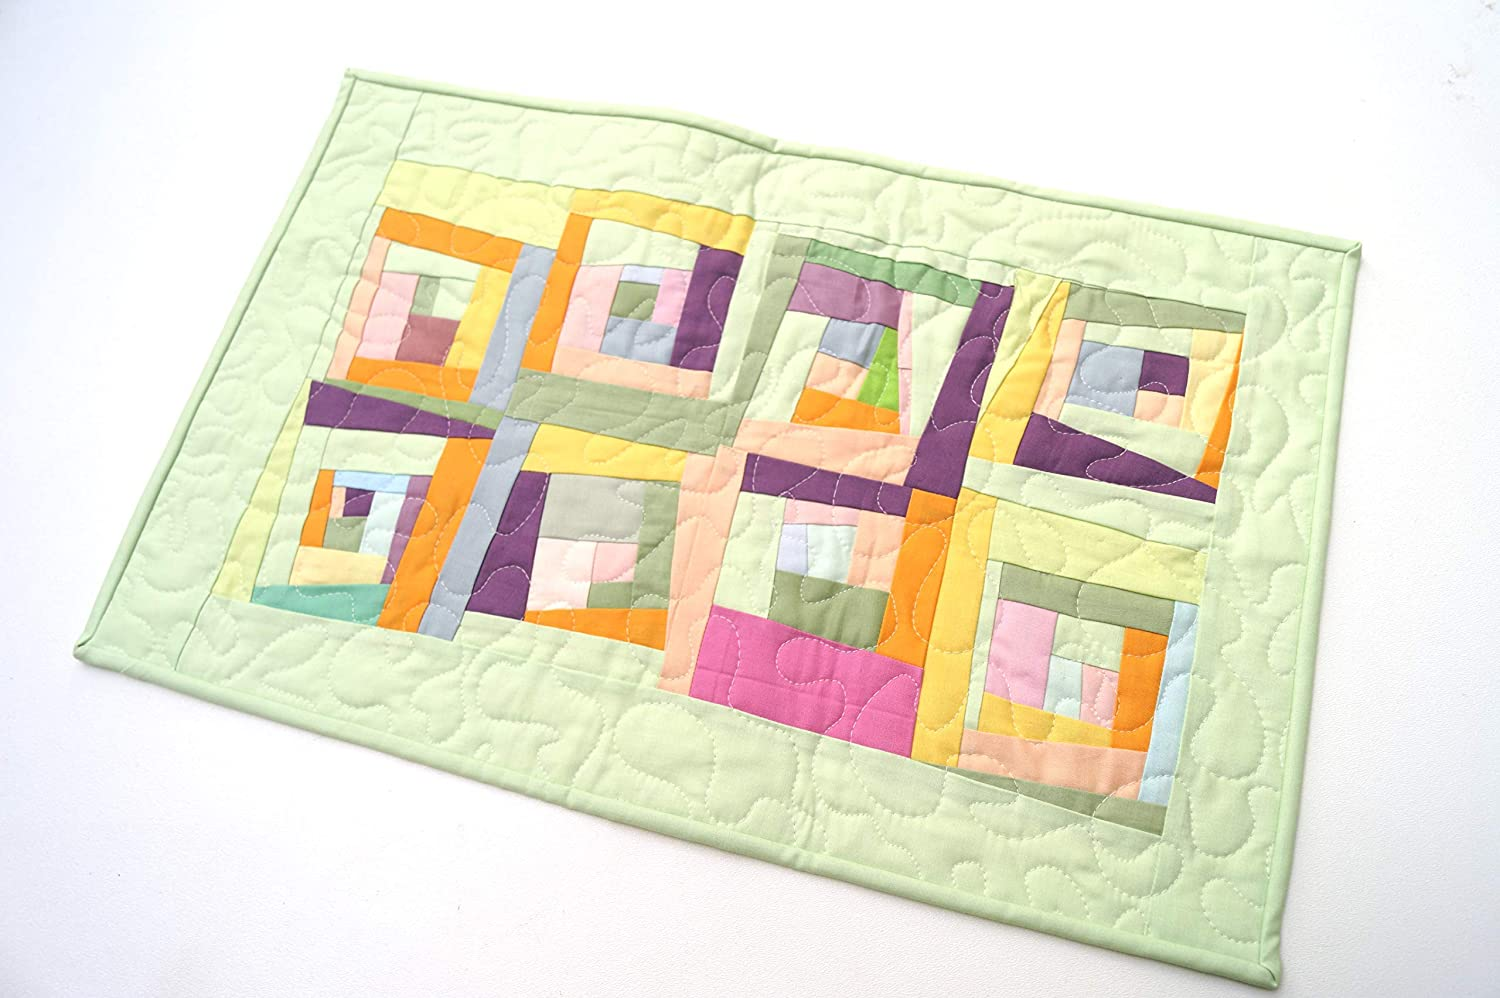 outlet Modern Quilted Fabric Cheap mail order specialty store Table or Runner Wall Hanging